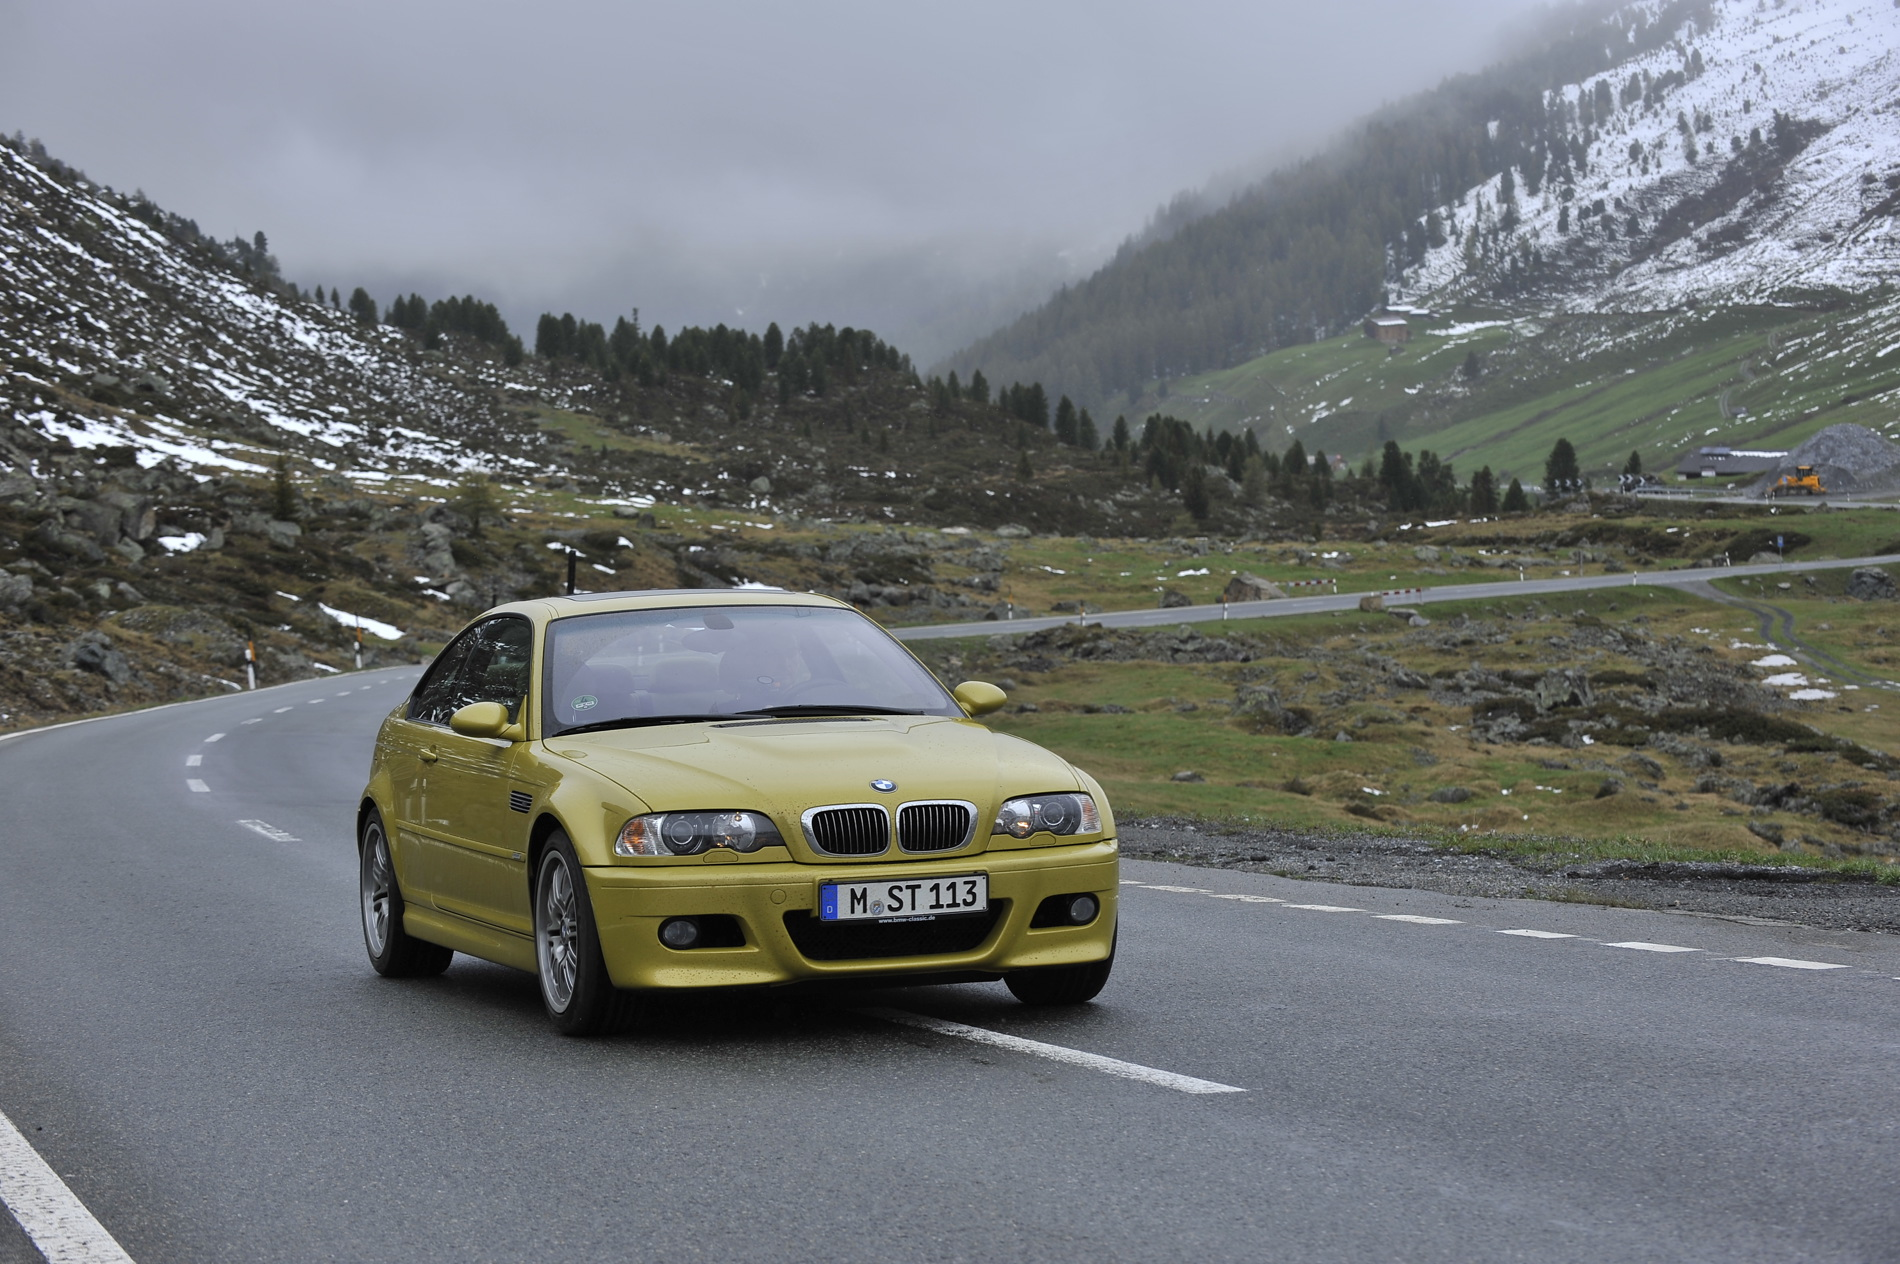 BMW E46 M3 phoenix yellow 24